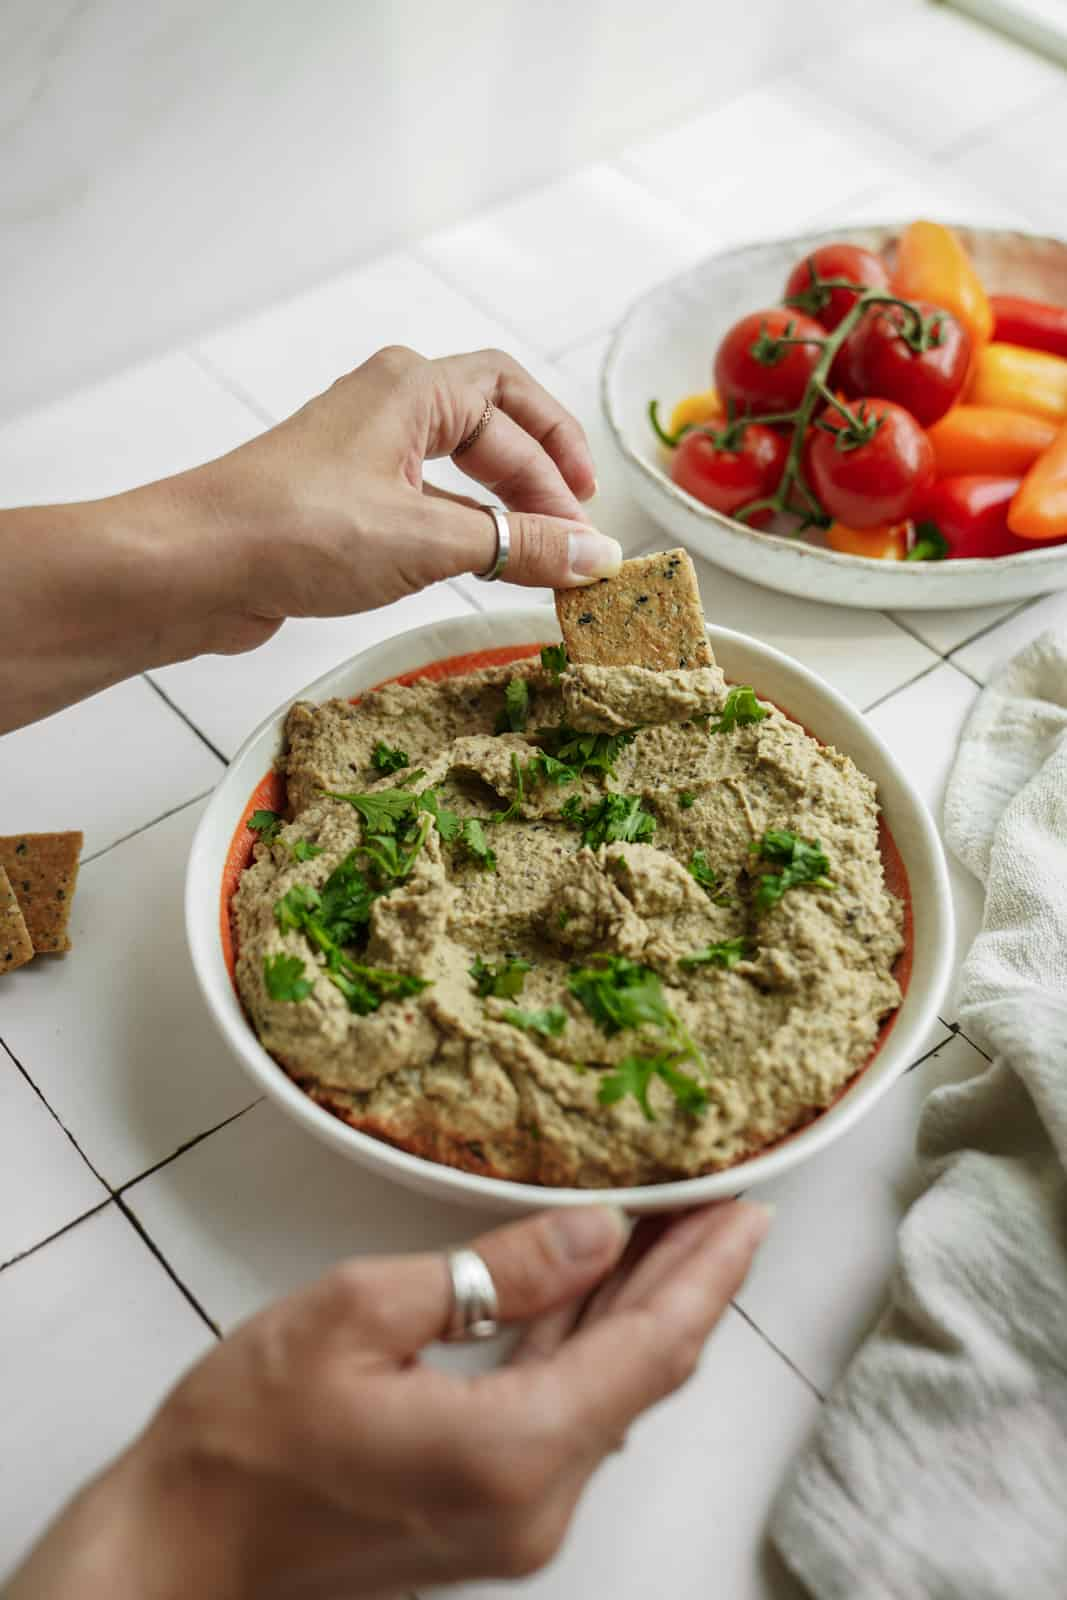 Big bowl of creamy eggplant dip with hand dipping cracker into it